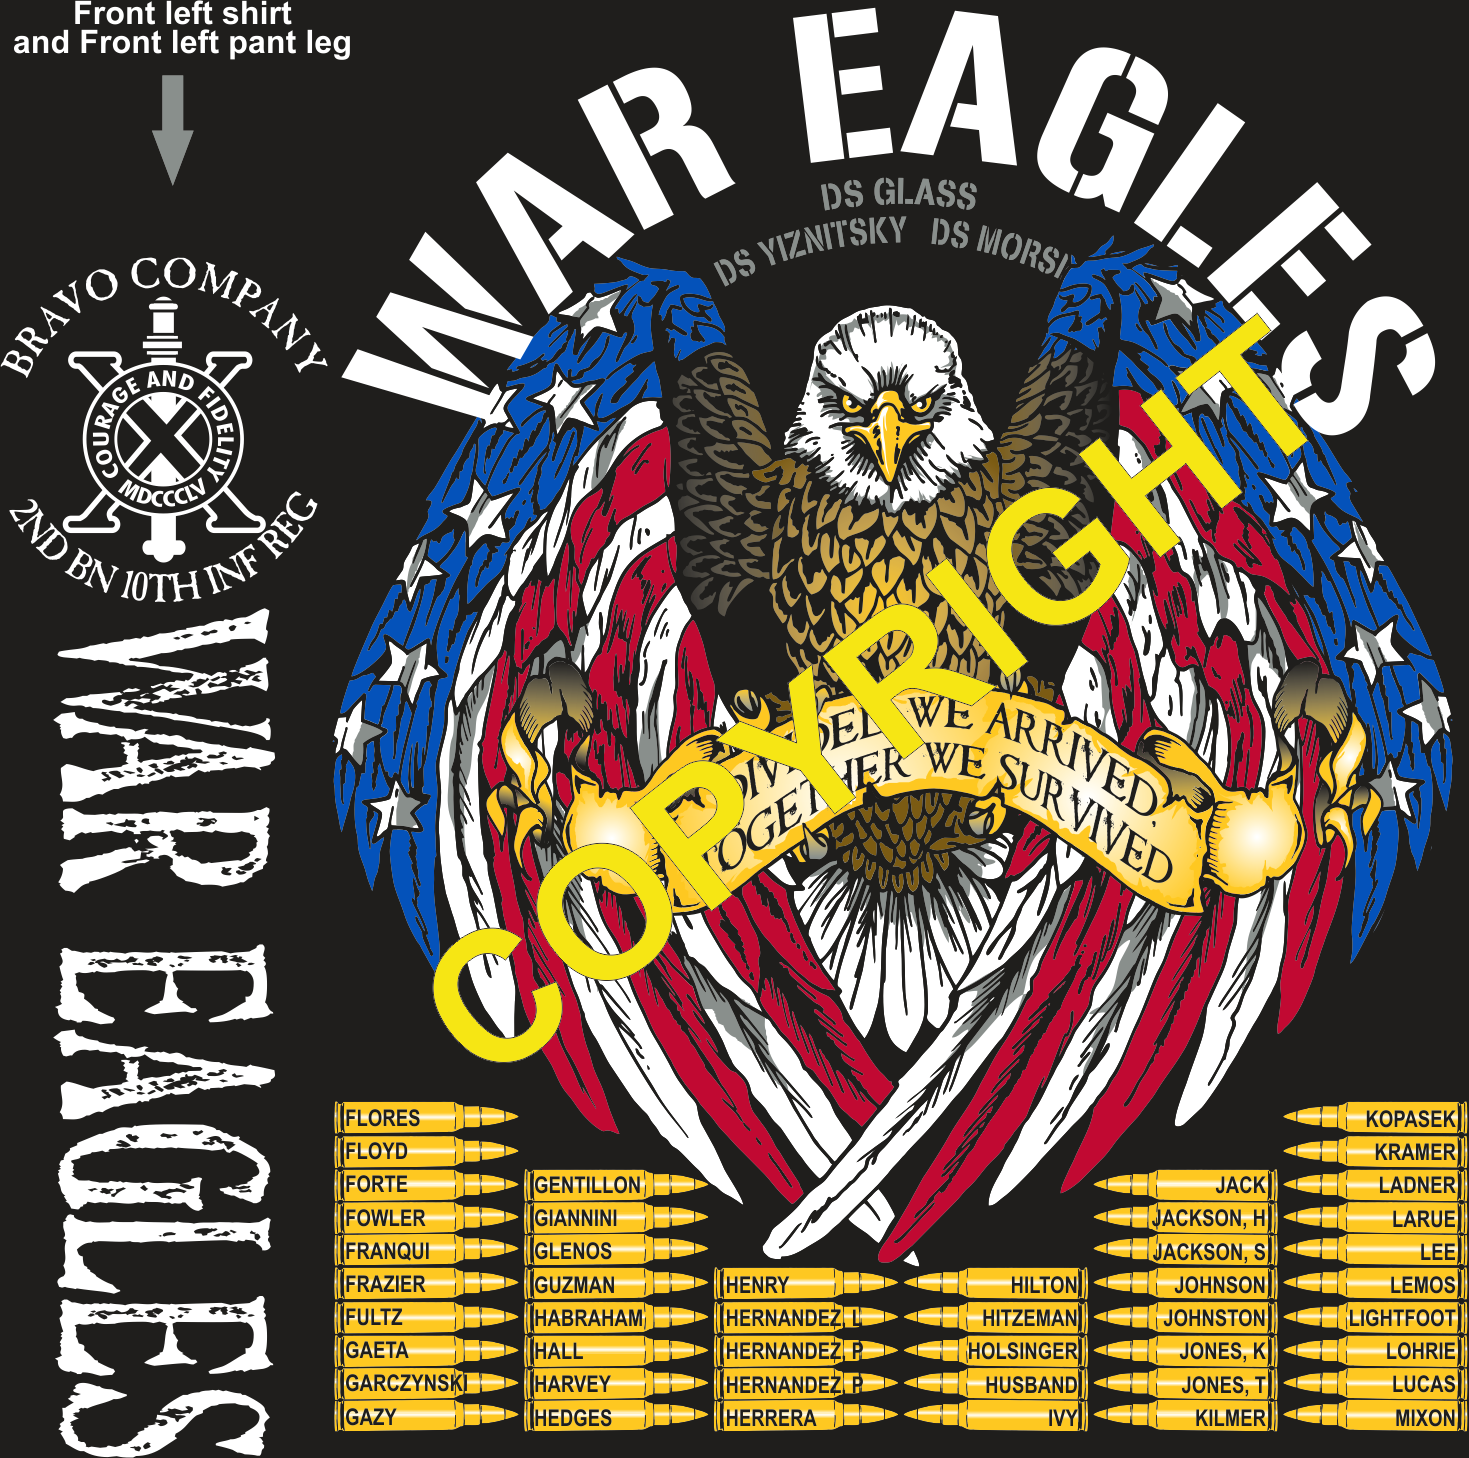 BRAVO 2-10 WAR EAGLES GRADUATING 3-29-2018 digital